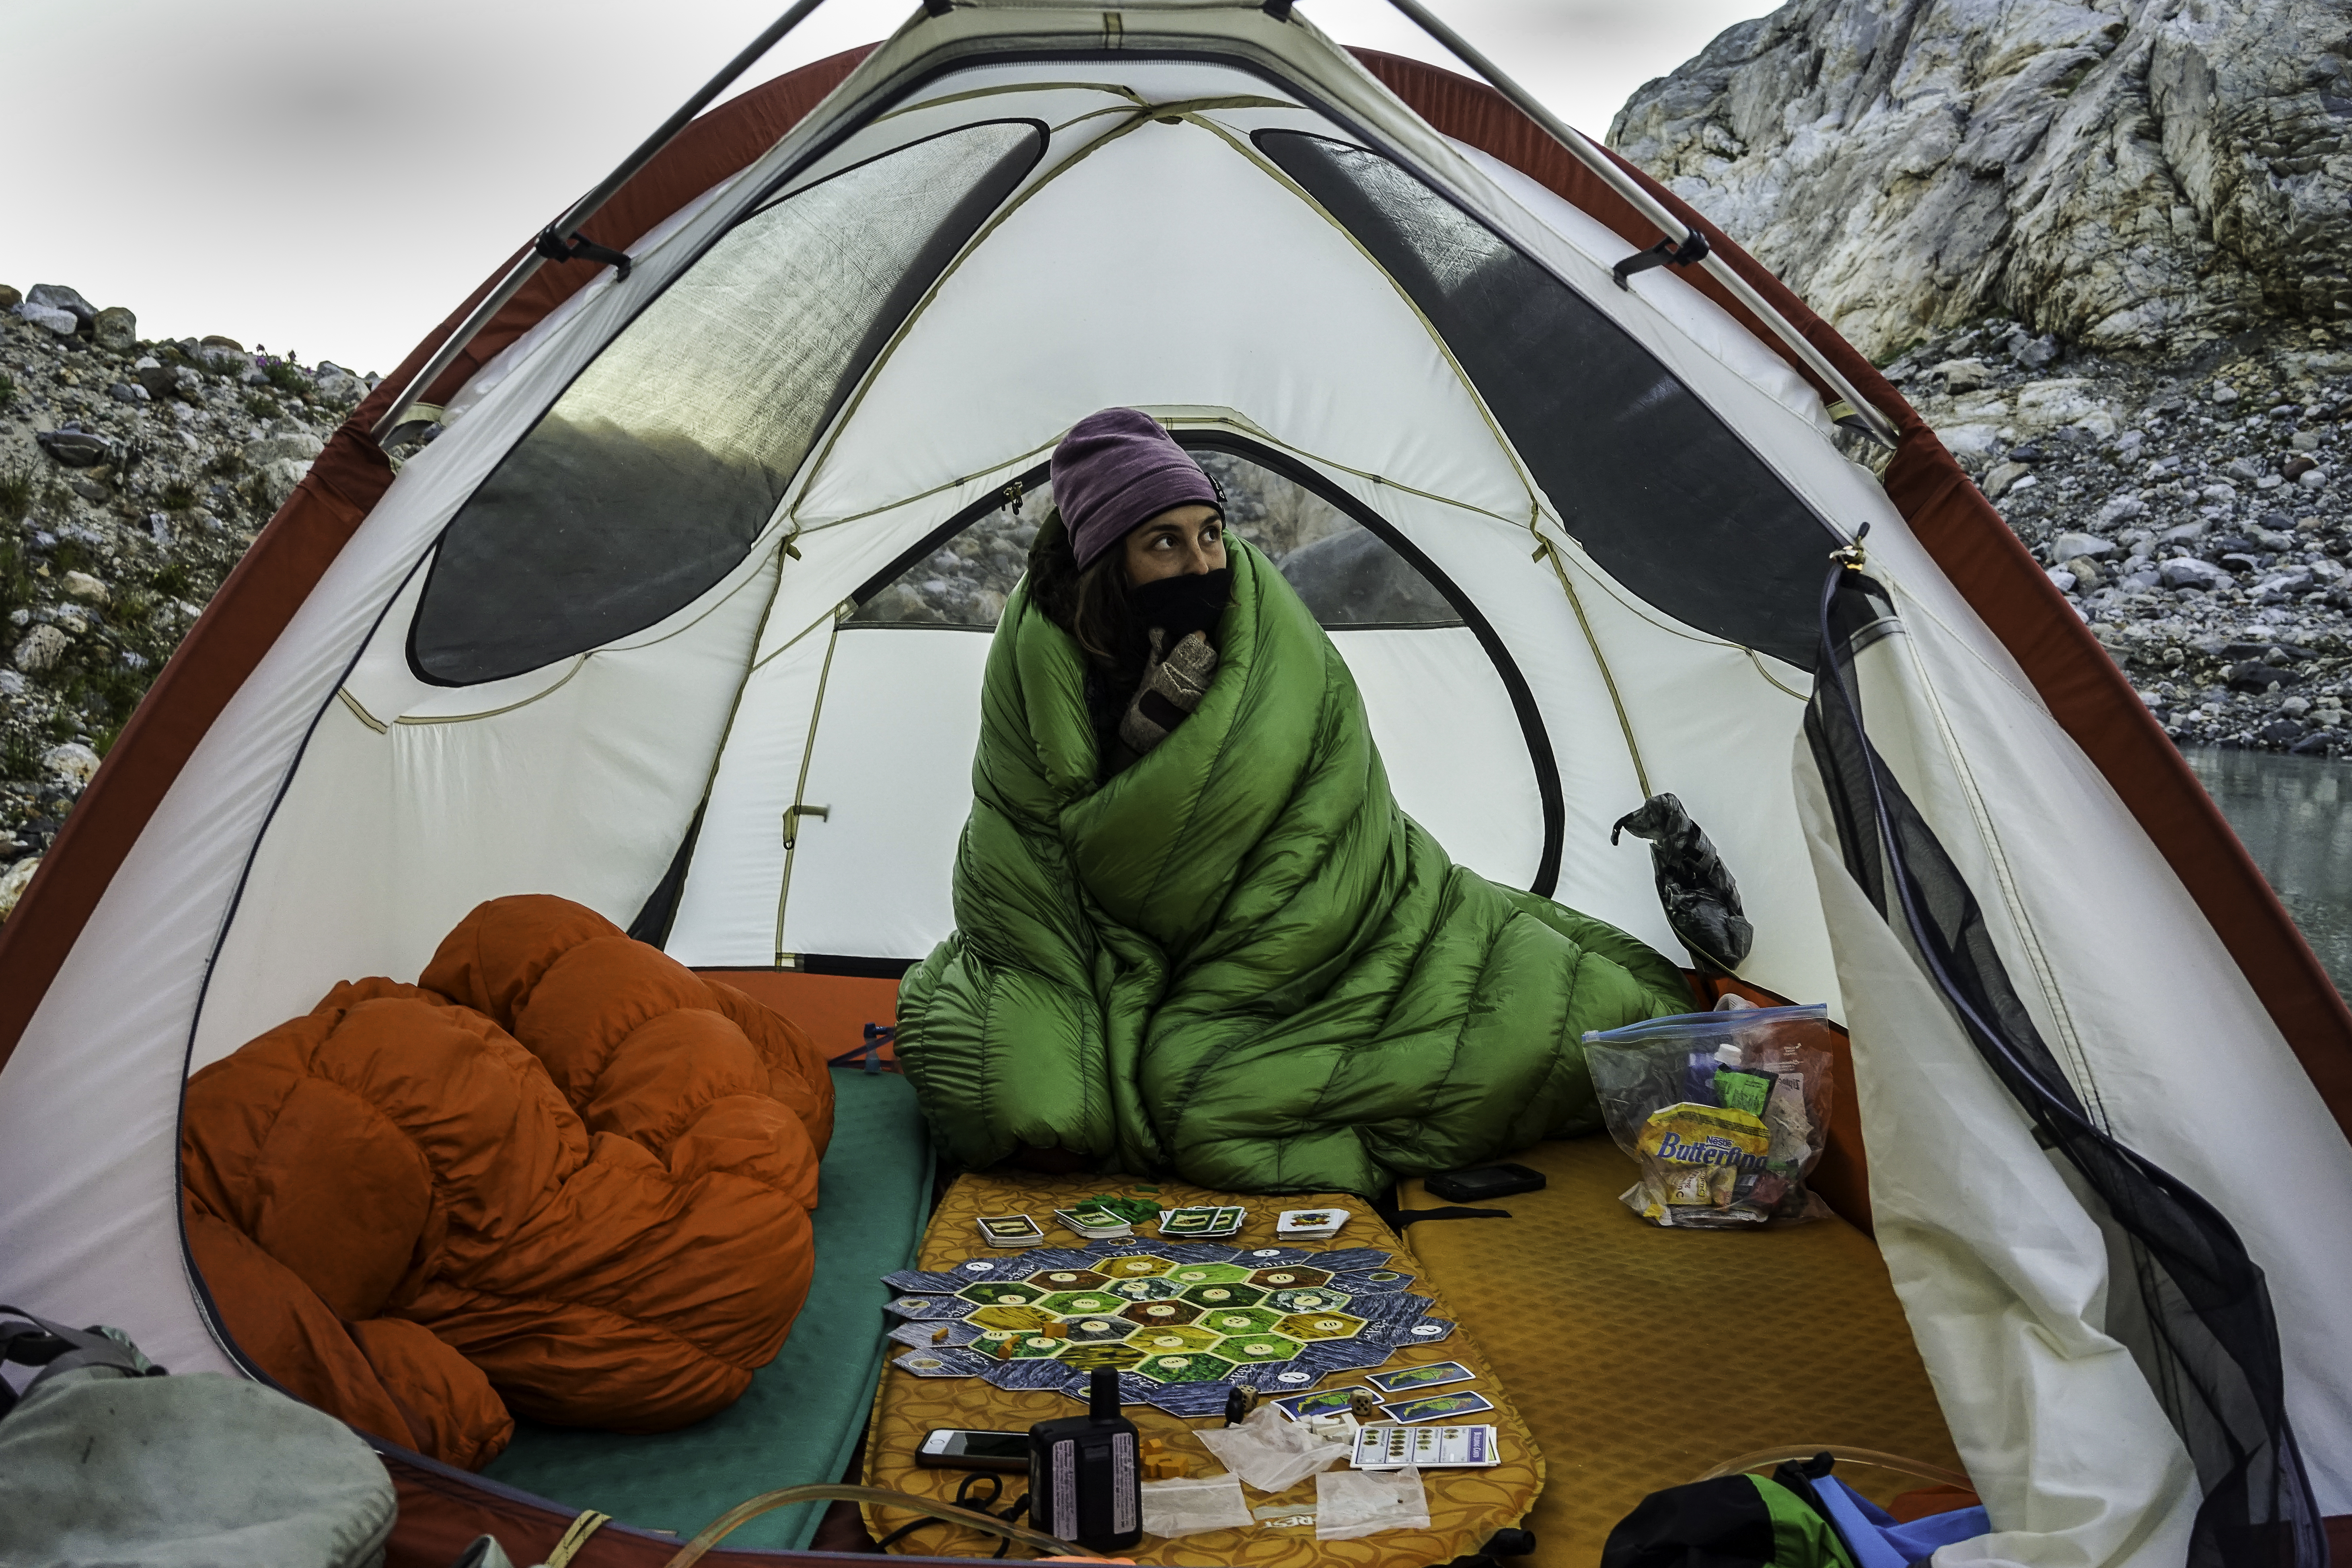 ... how to go lighter as a couple when backpacking Montbell Super Spiral Down Hugger sleeping bags vs quilts thru hiking zpacks double quilt3 Comments & Sharing is Caring: The Double Quilt u2013 tandem trekking